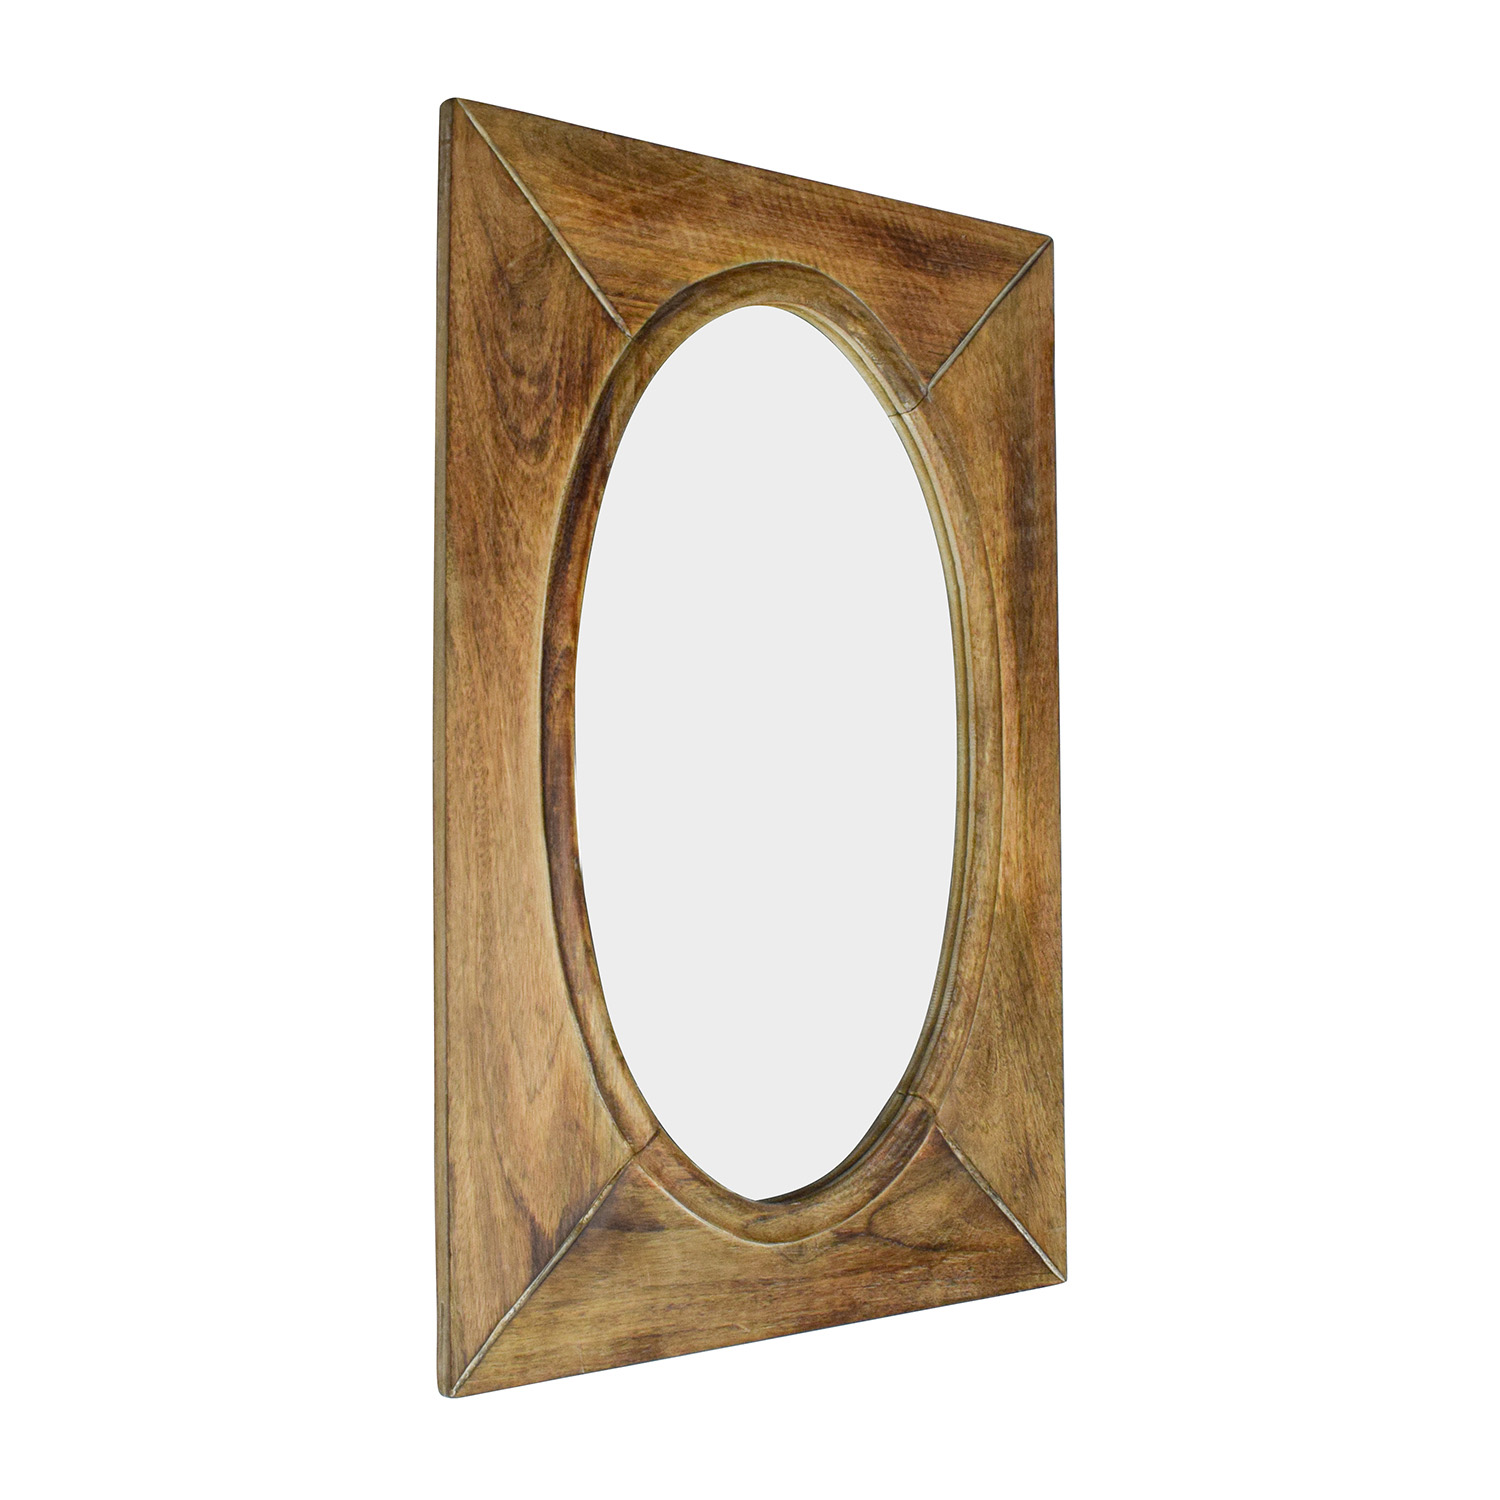 buy World Market World Market Rustic Wood Shandi Oval Mirror online